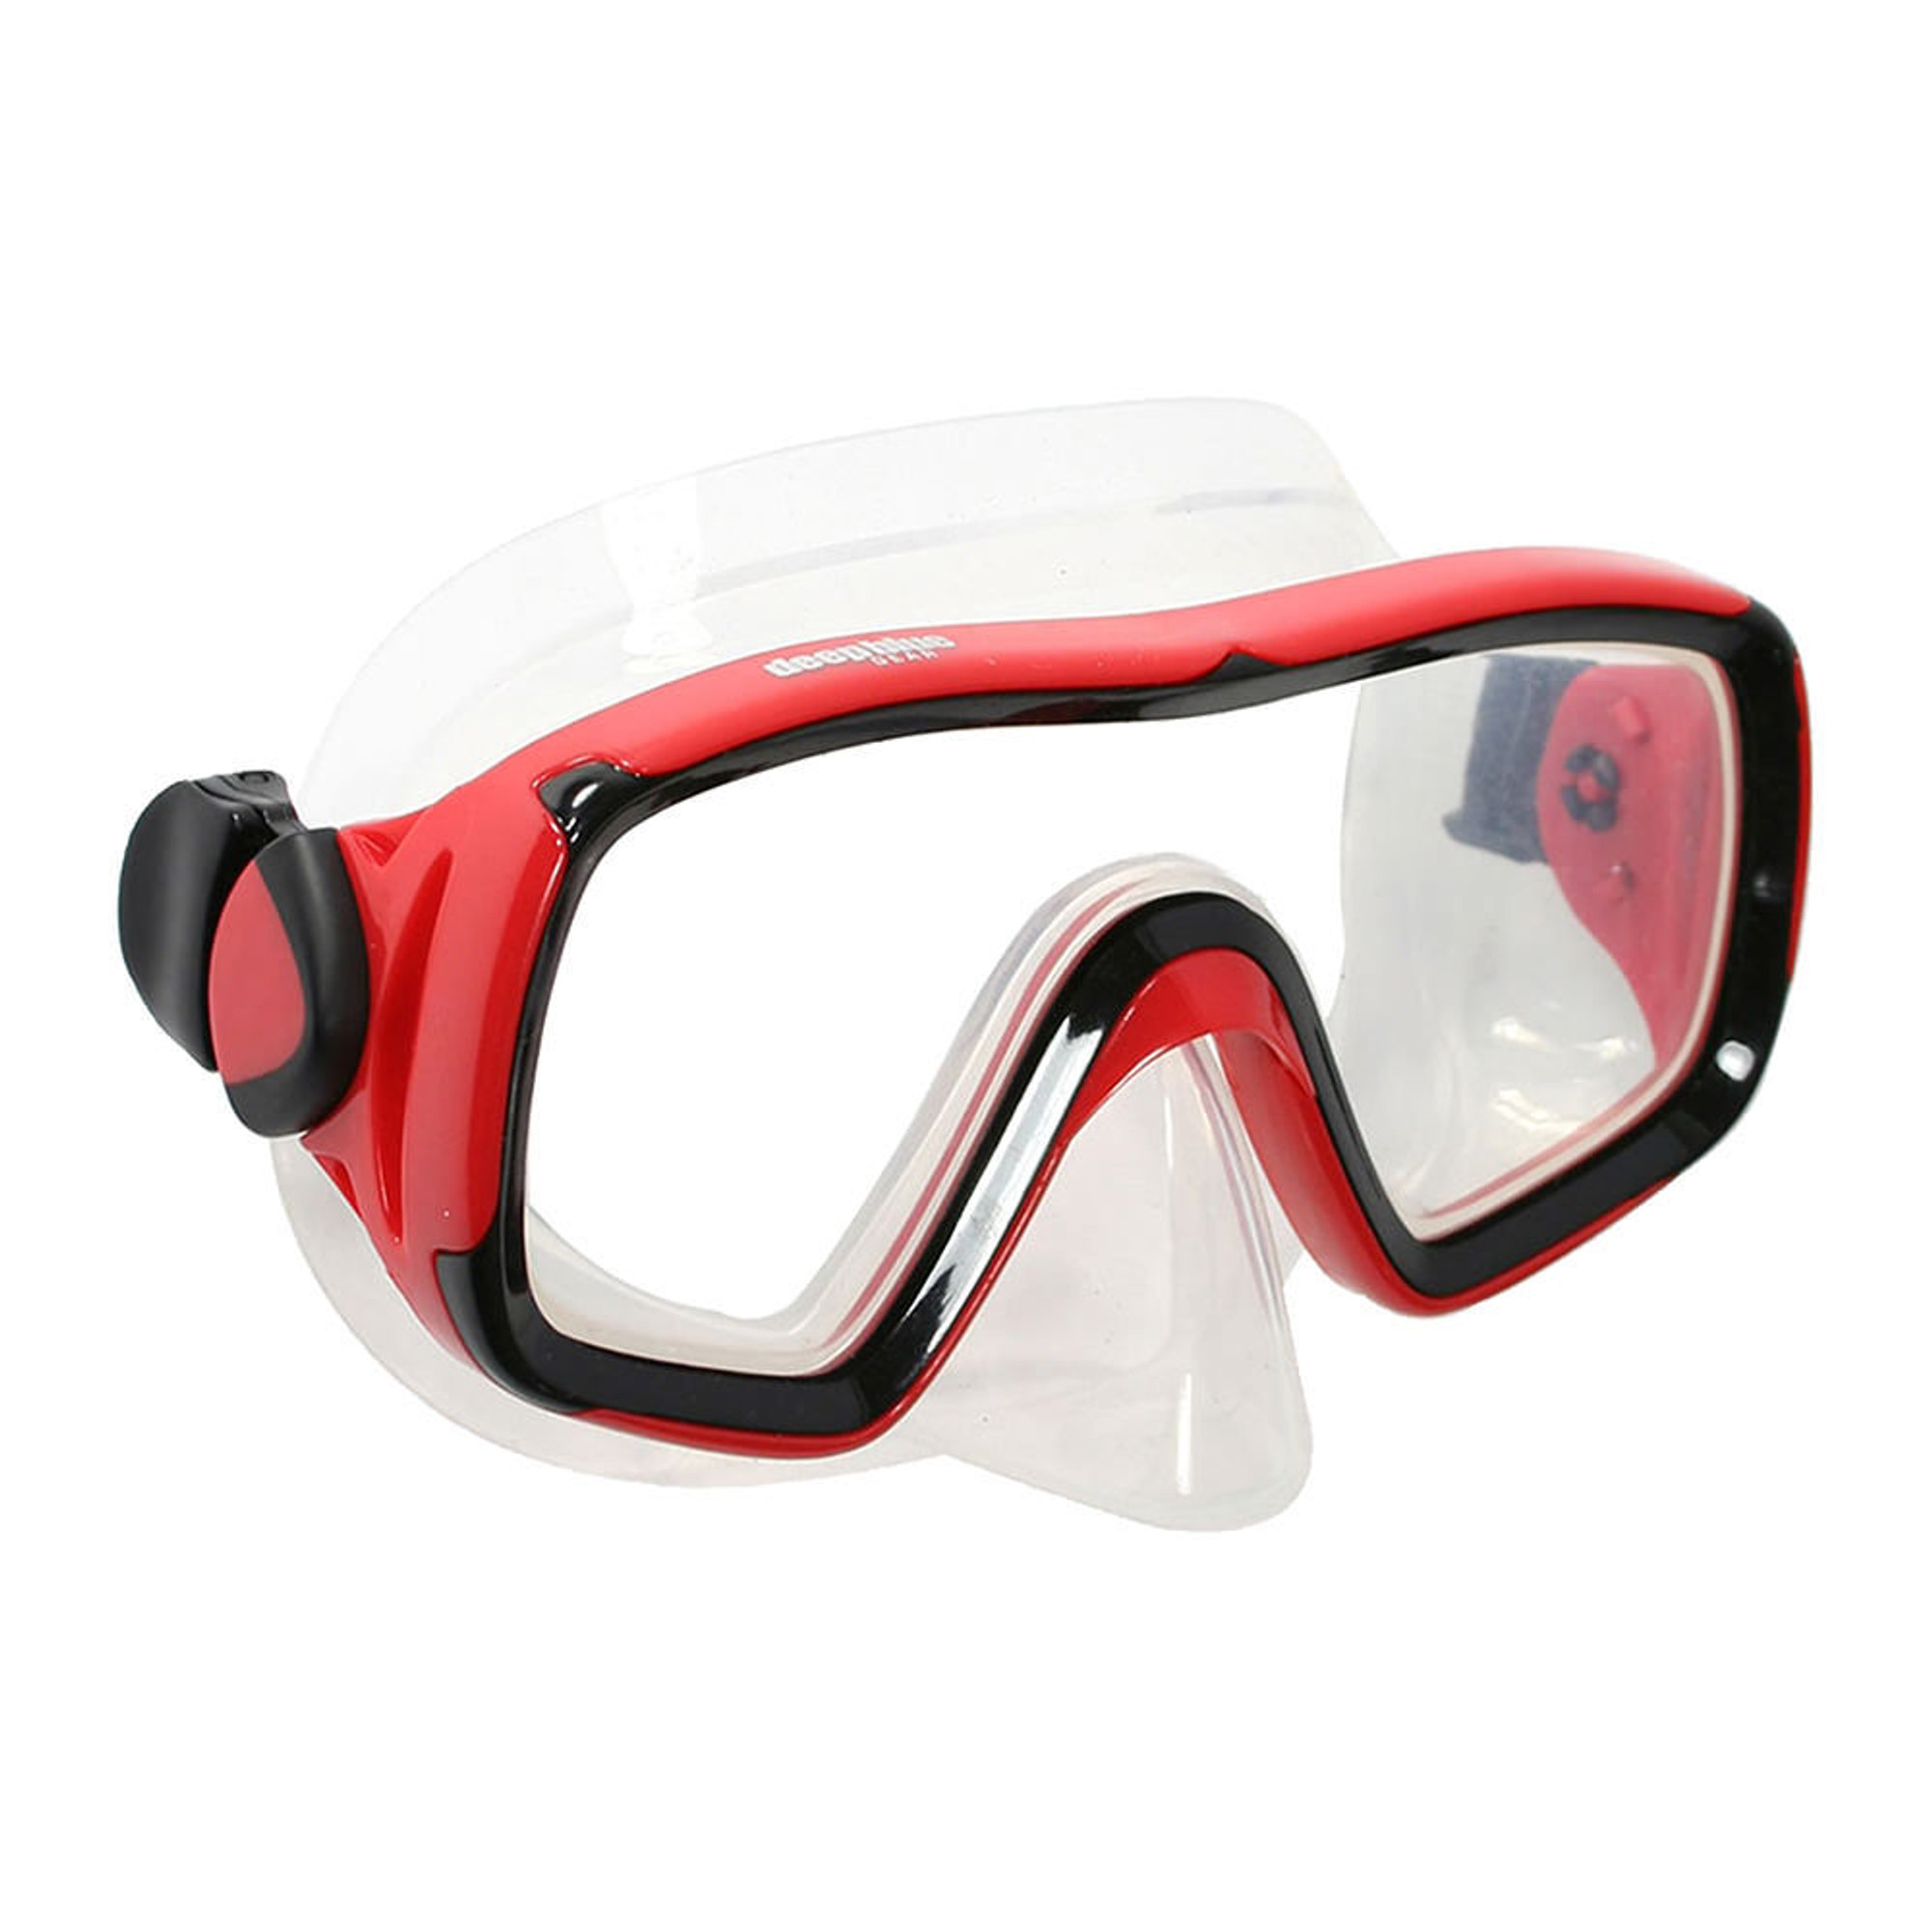 Montego - Diving/Snorkeling Mask